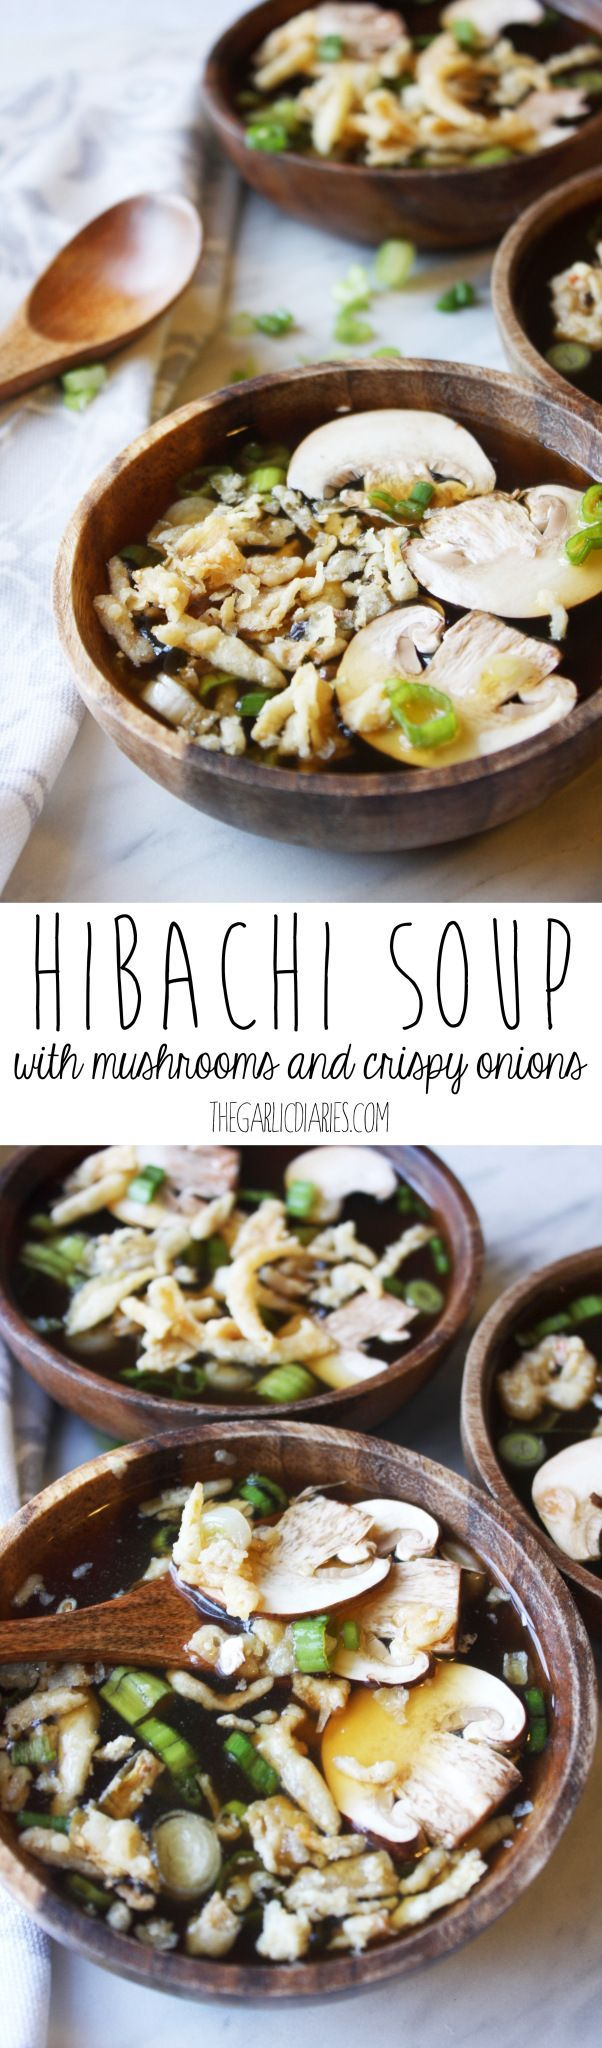 Hibachi Soup with Mushrooms and Crispy Onions - TheGarlicDiaries.com